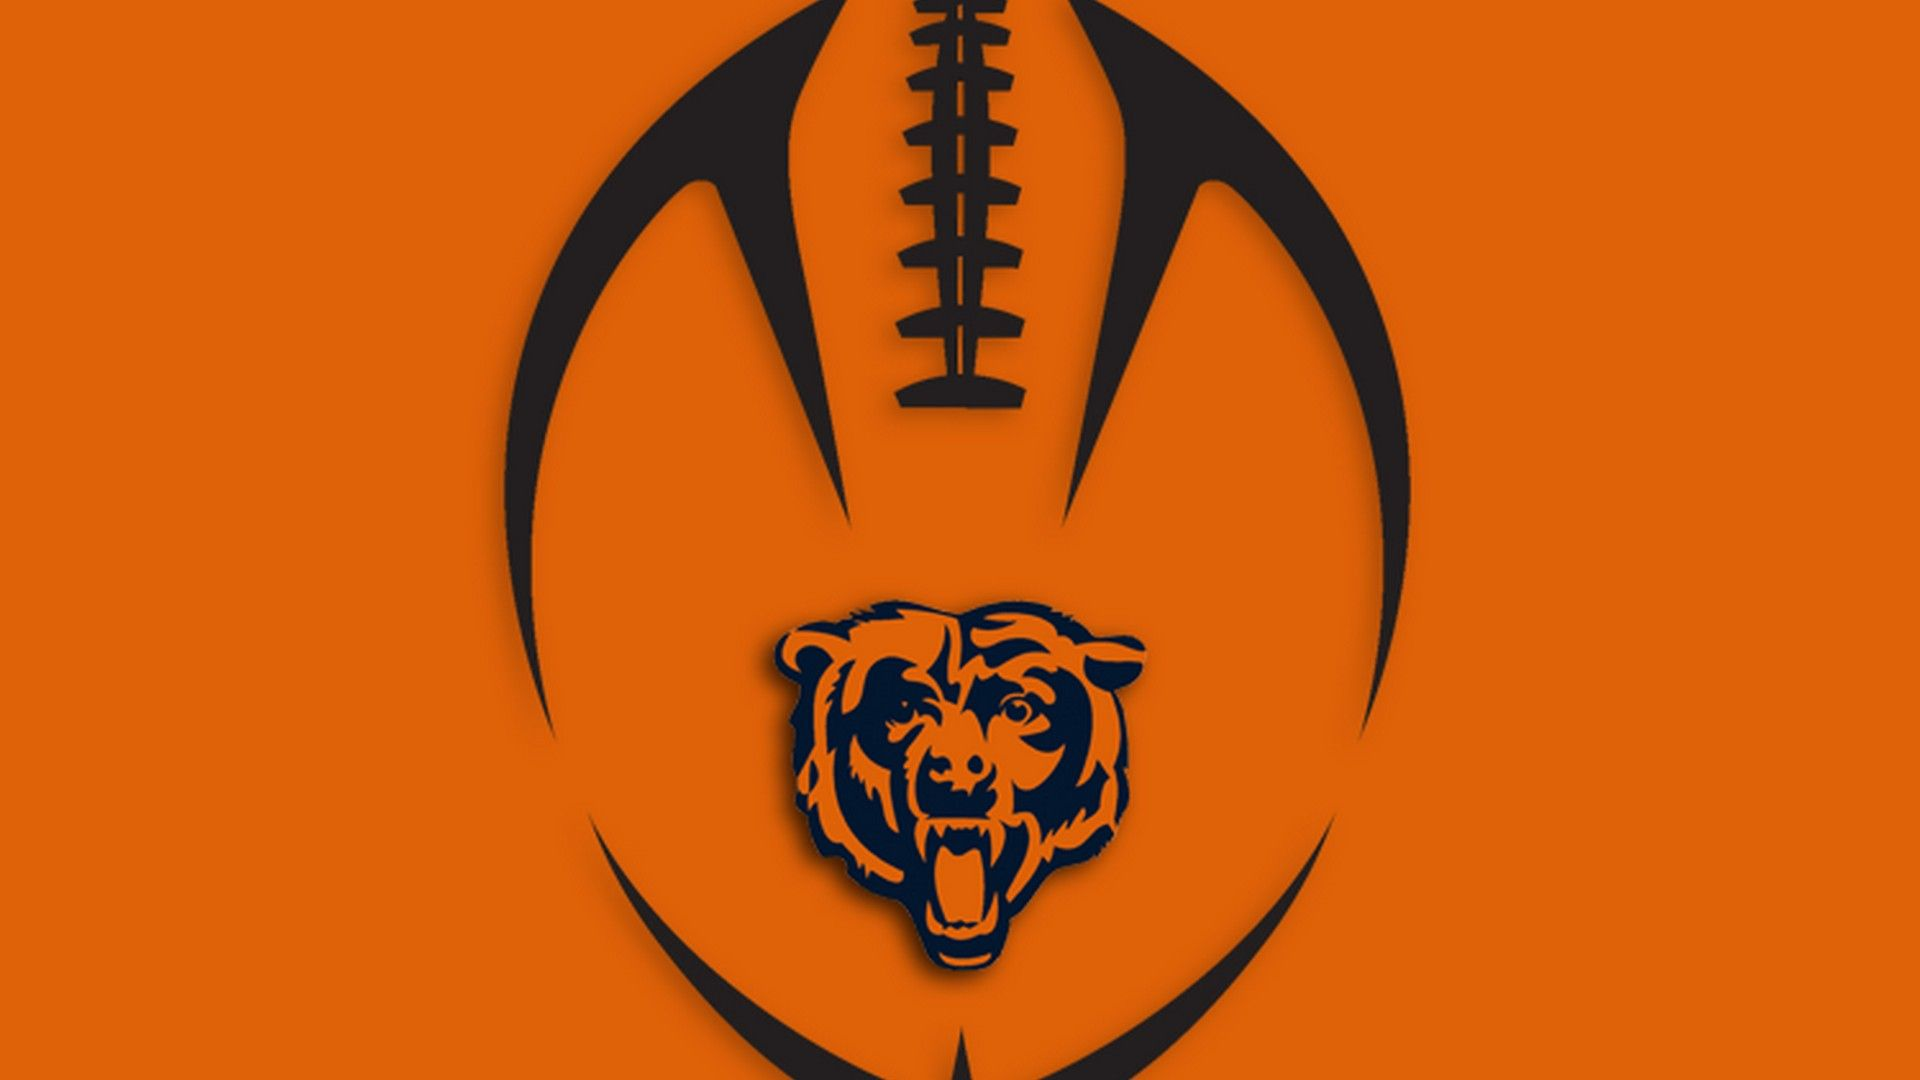 Wallpapers HD Chicago Bears Football wallpaper, Chicago